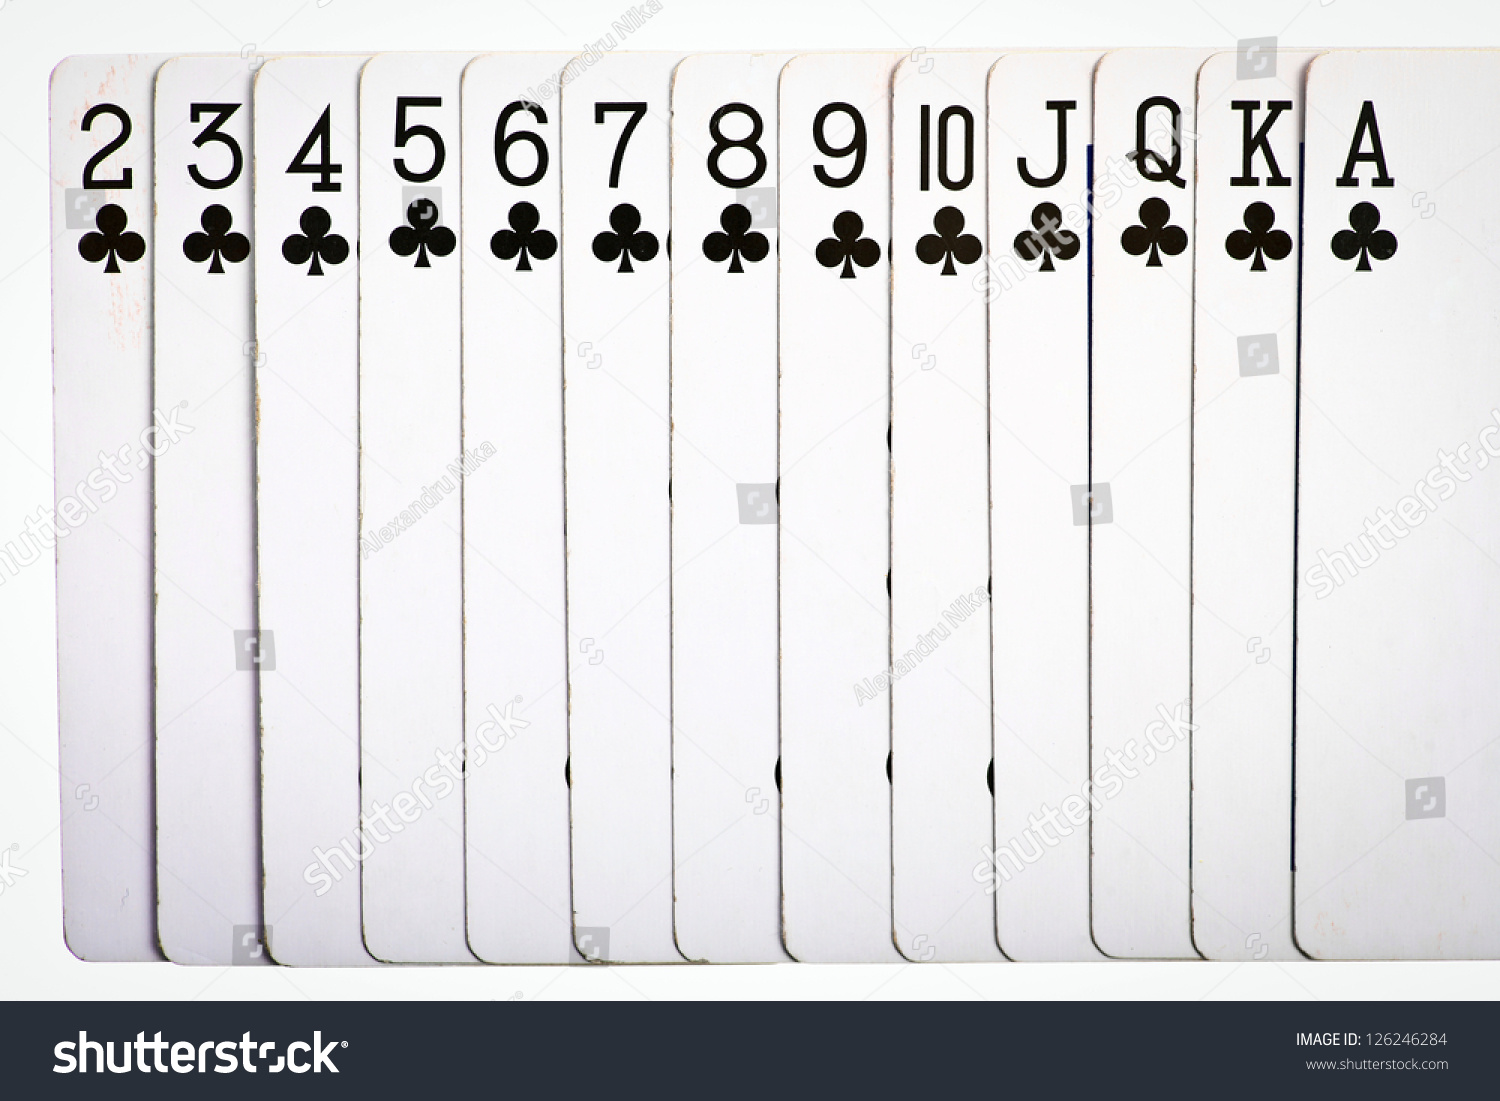 Playing cards ascending order clubs stock photo 126246284 shutterstock playing cards in ascending order clubs biocorpaavc Choice Image